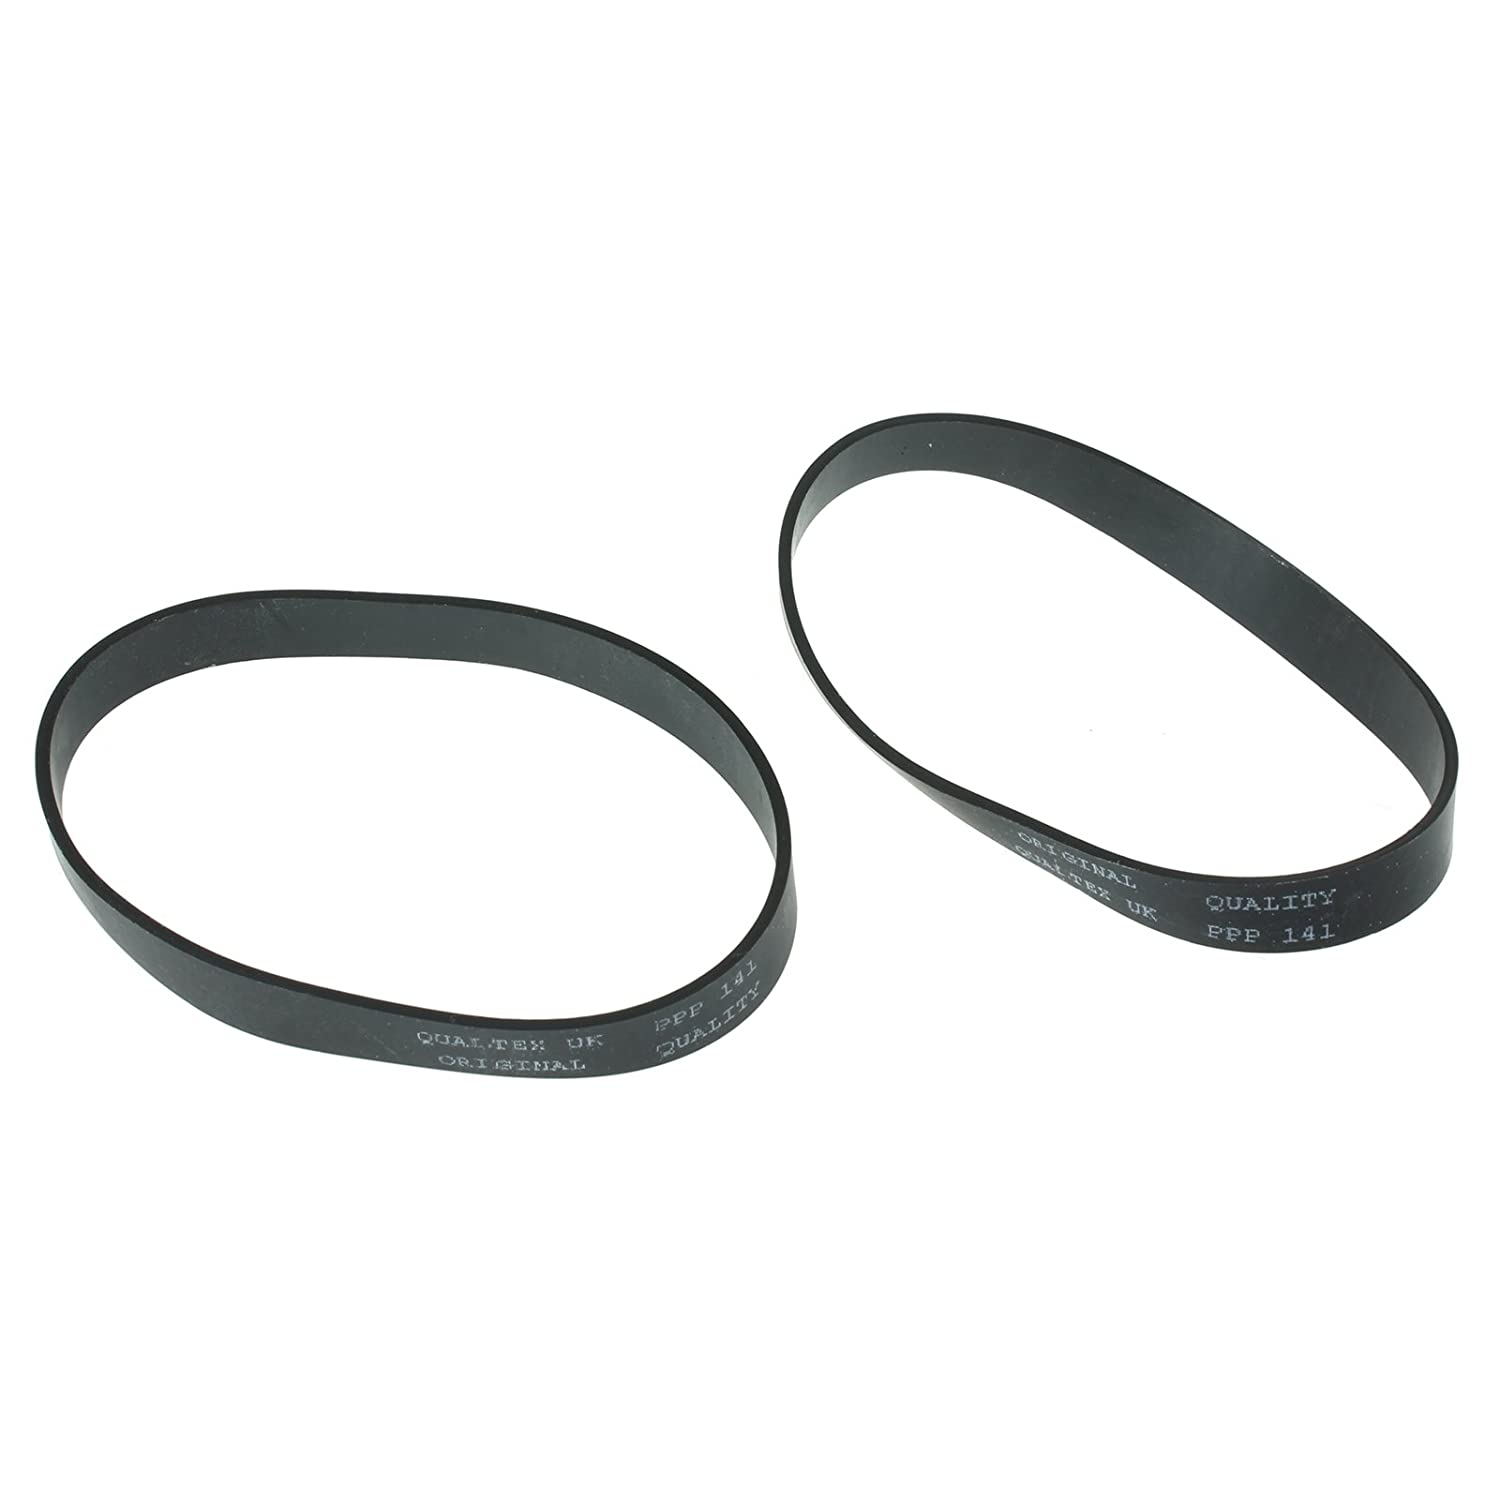 Spares2go Drive Belt for Morphy Richards 73284 73288 Vacuum Cleaners (Pack of 2)